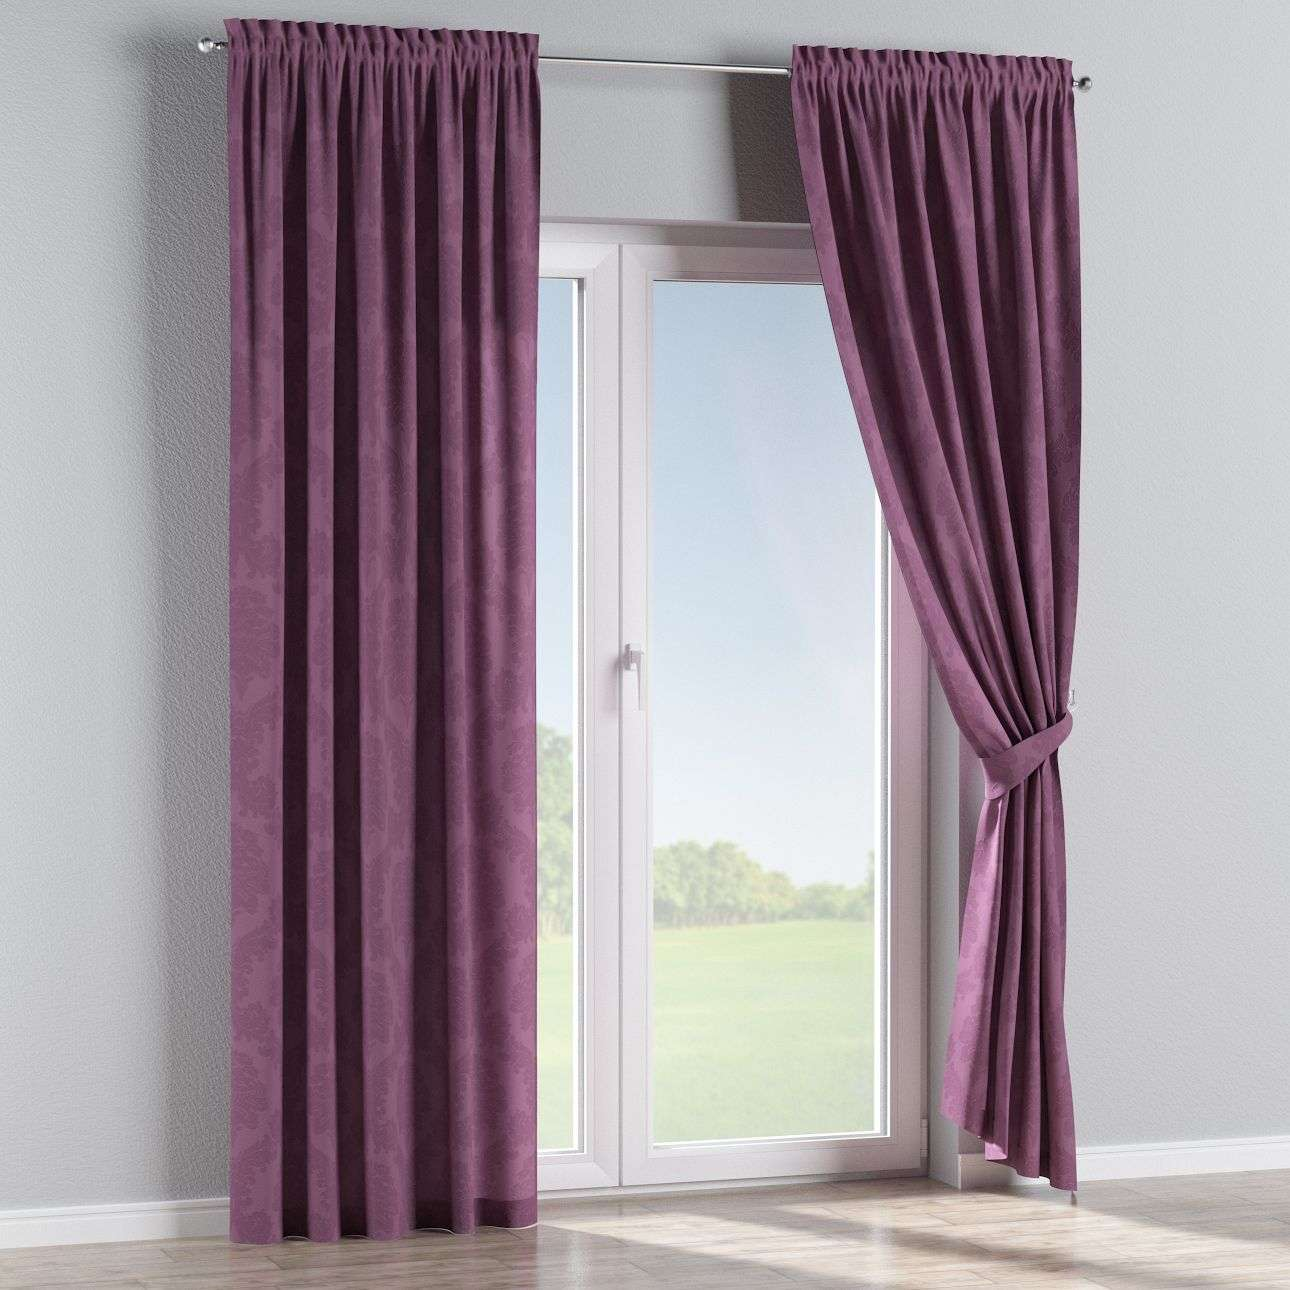 Slot and frill curtains 130 x 260 cm (51 x 102 inch) in collection Damasco, fabric: 613-75